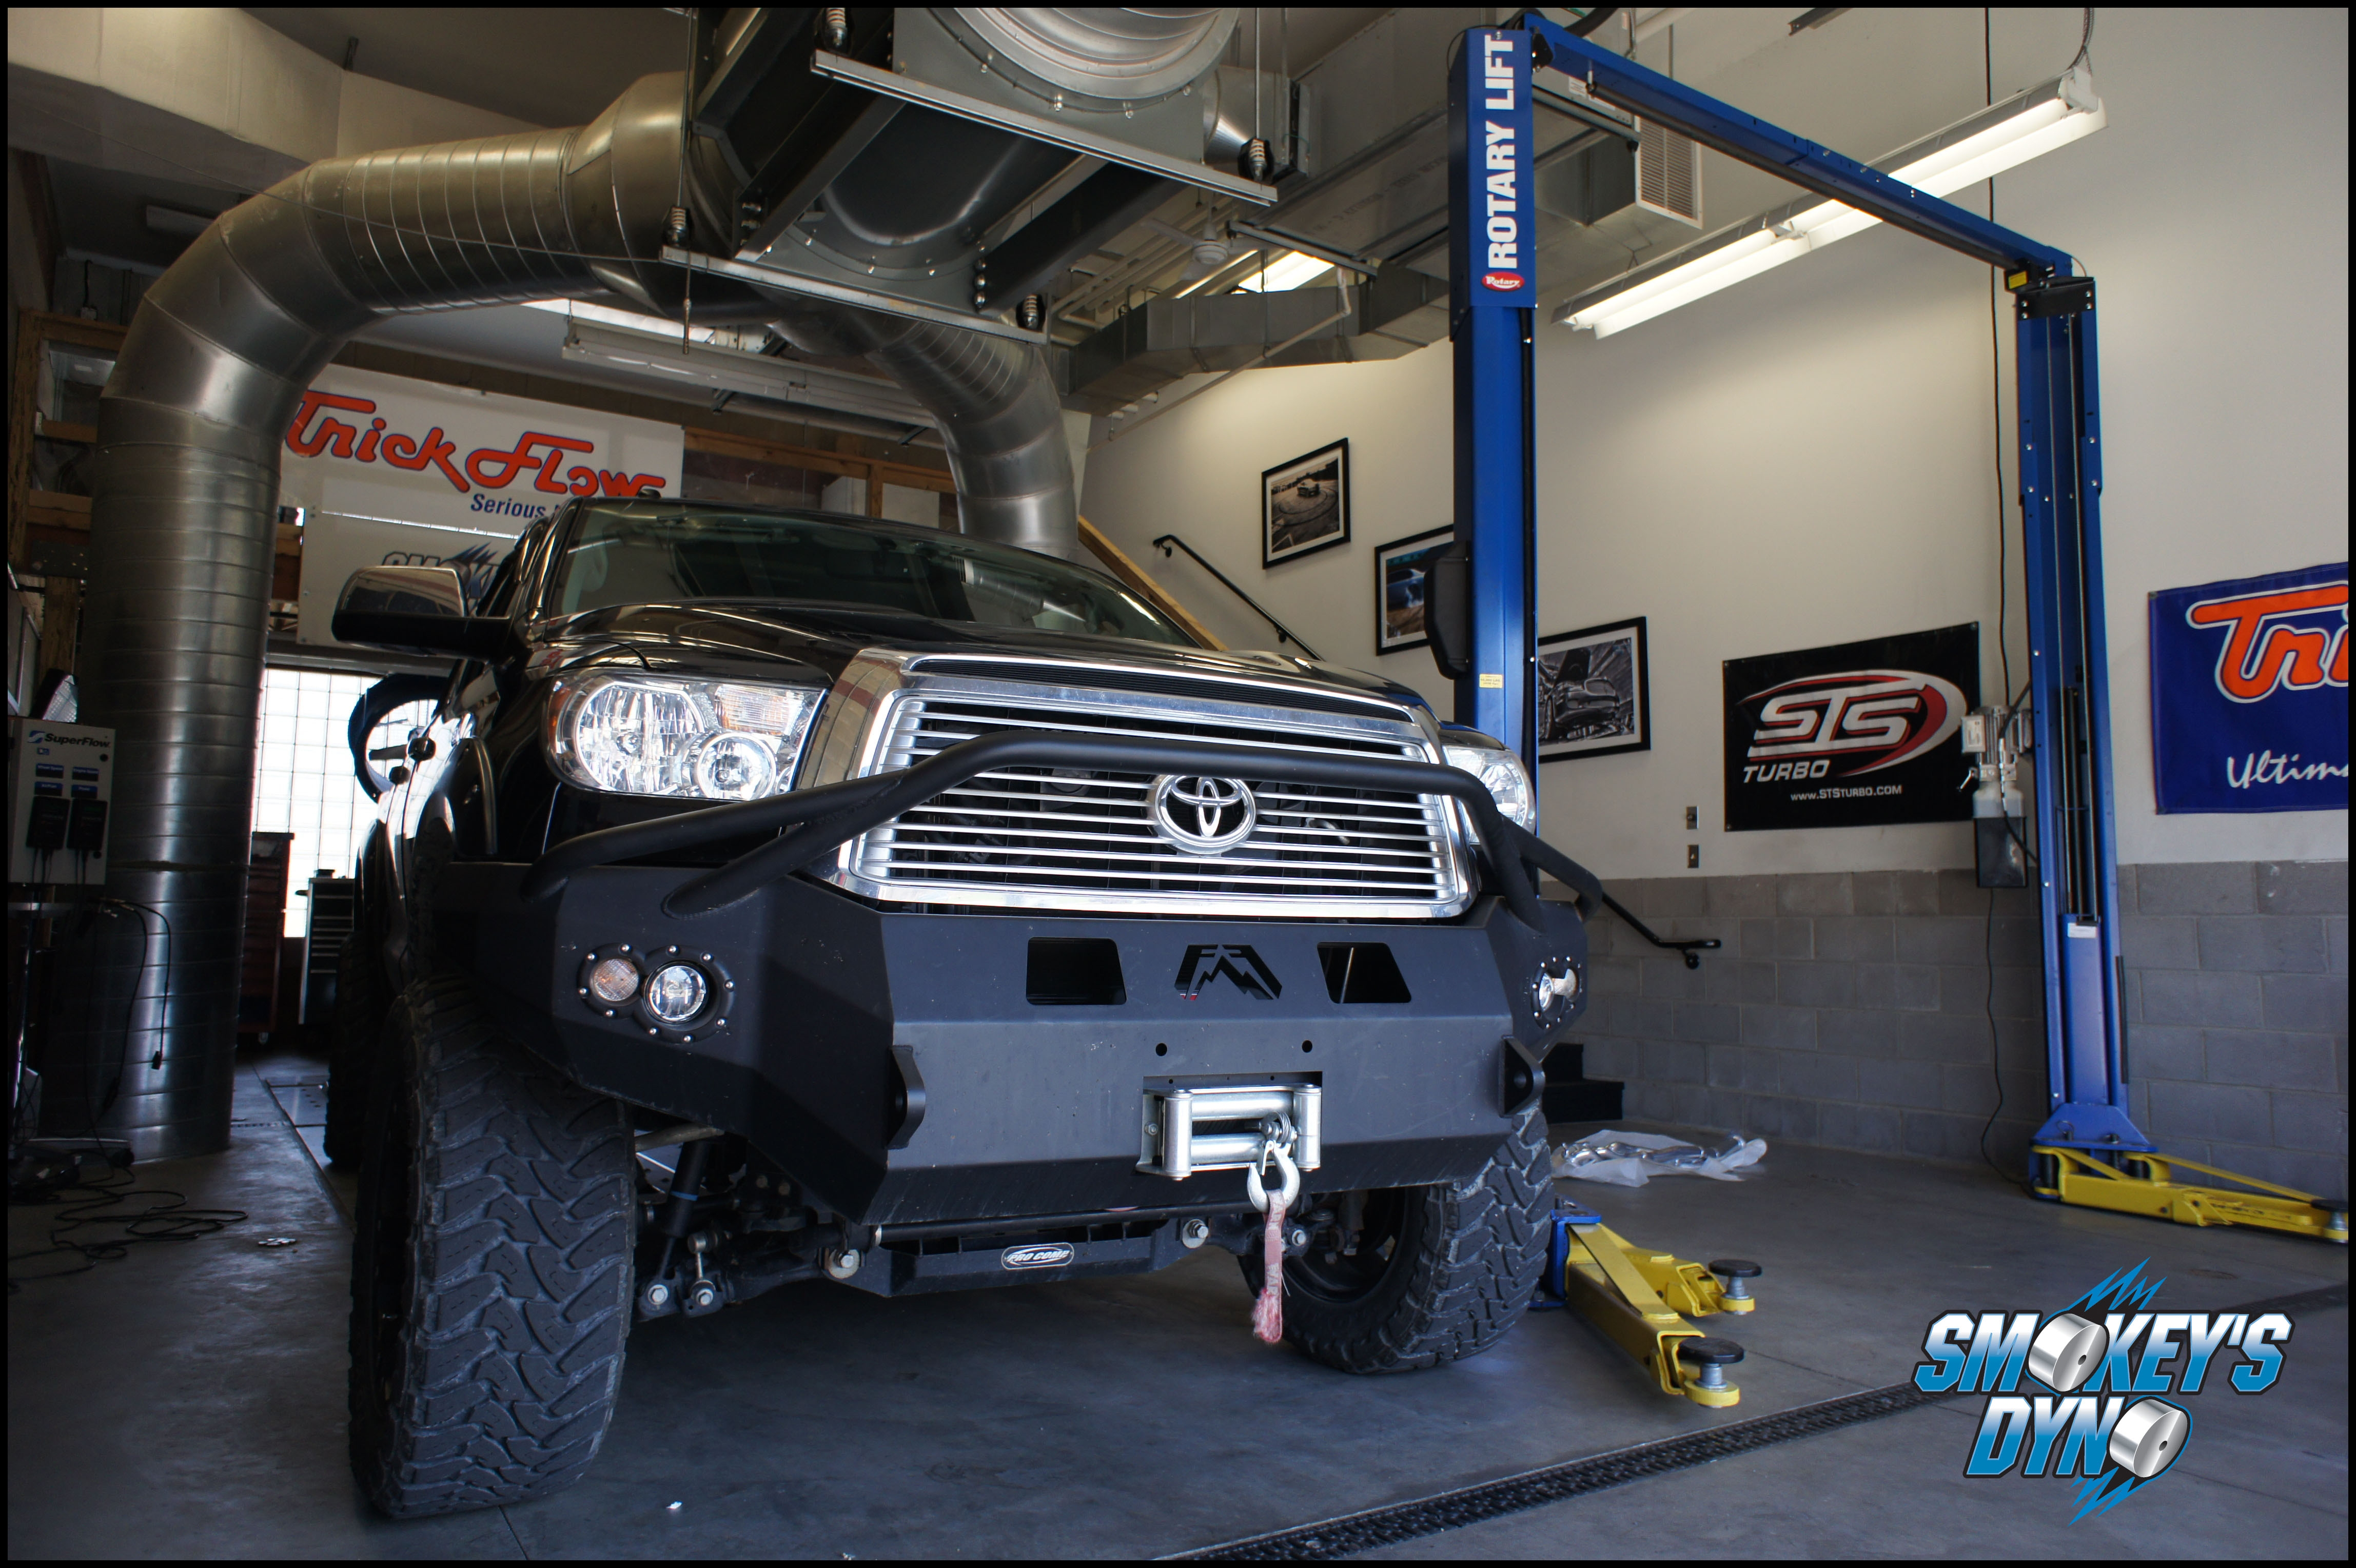 2010 TRD Supercharged Toyota Tundra Built By Smokey s Dyno